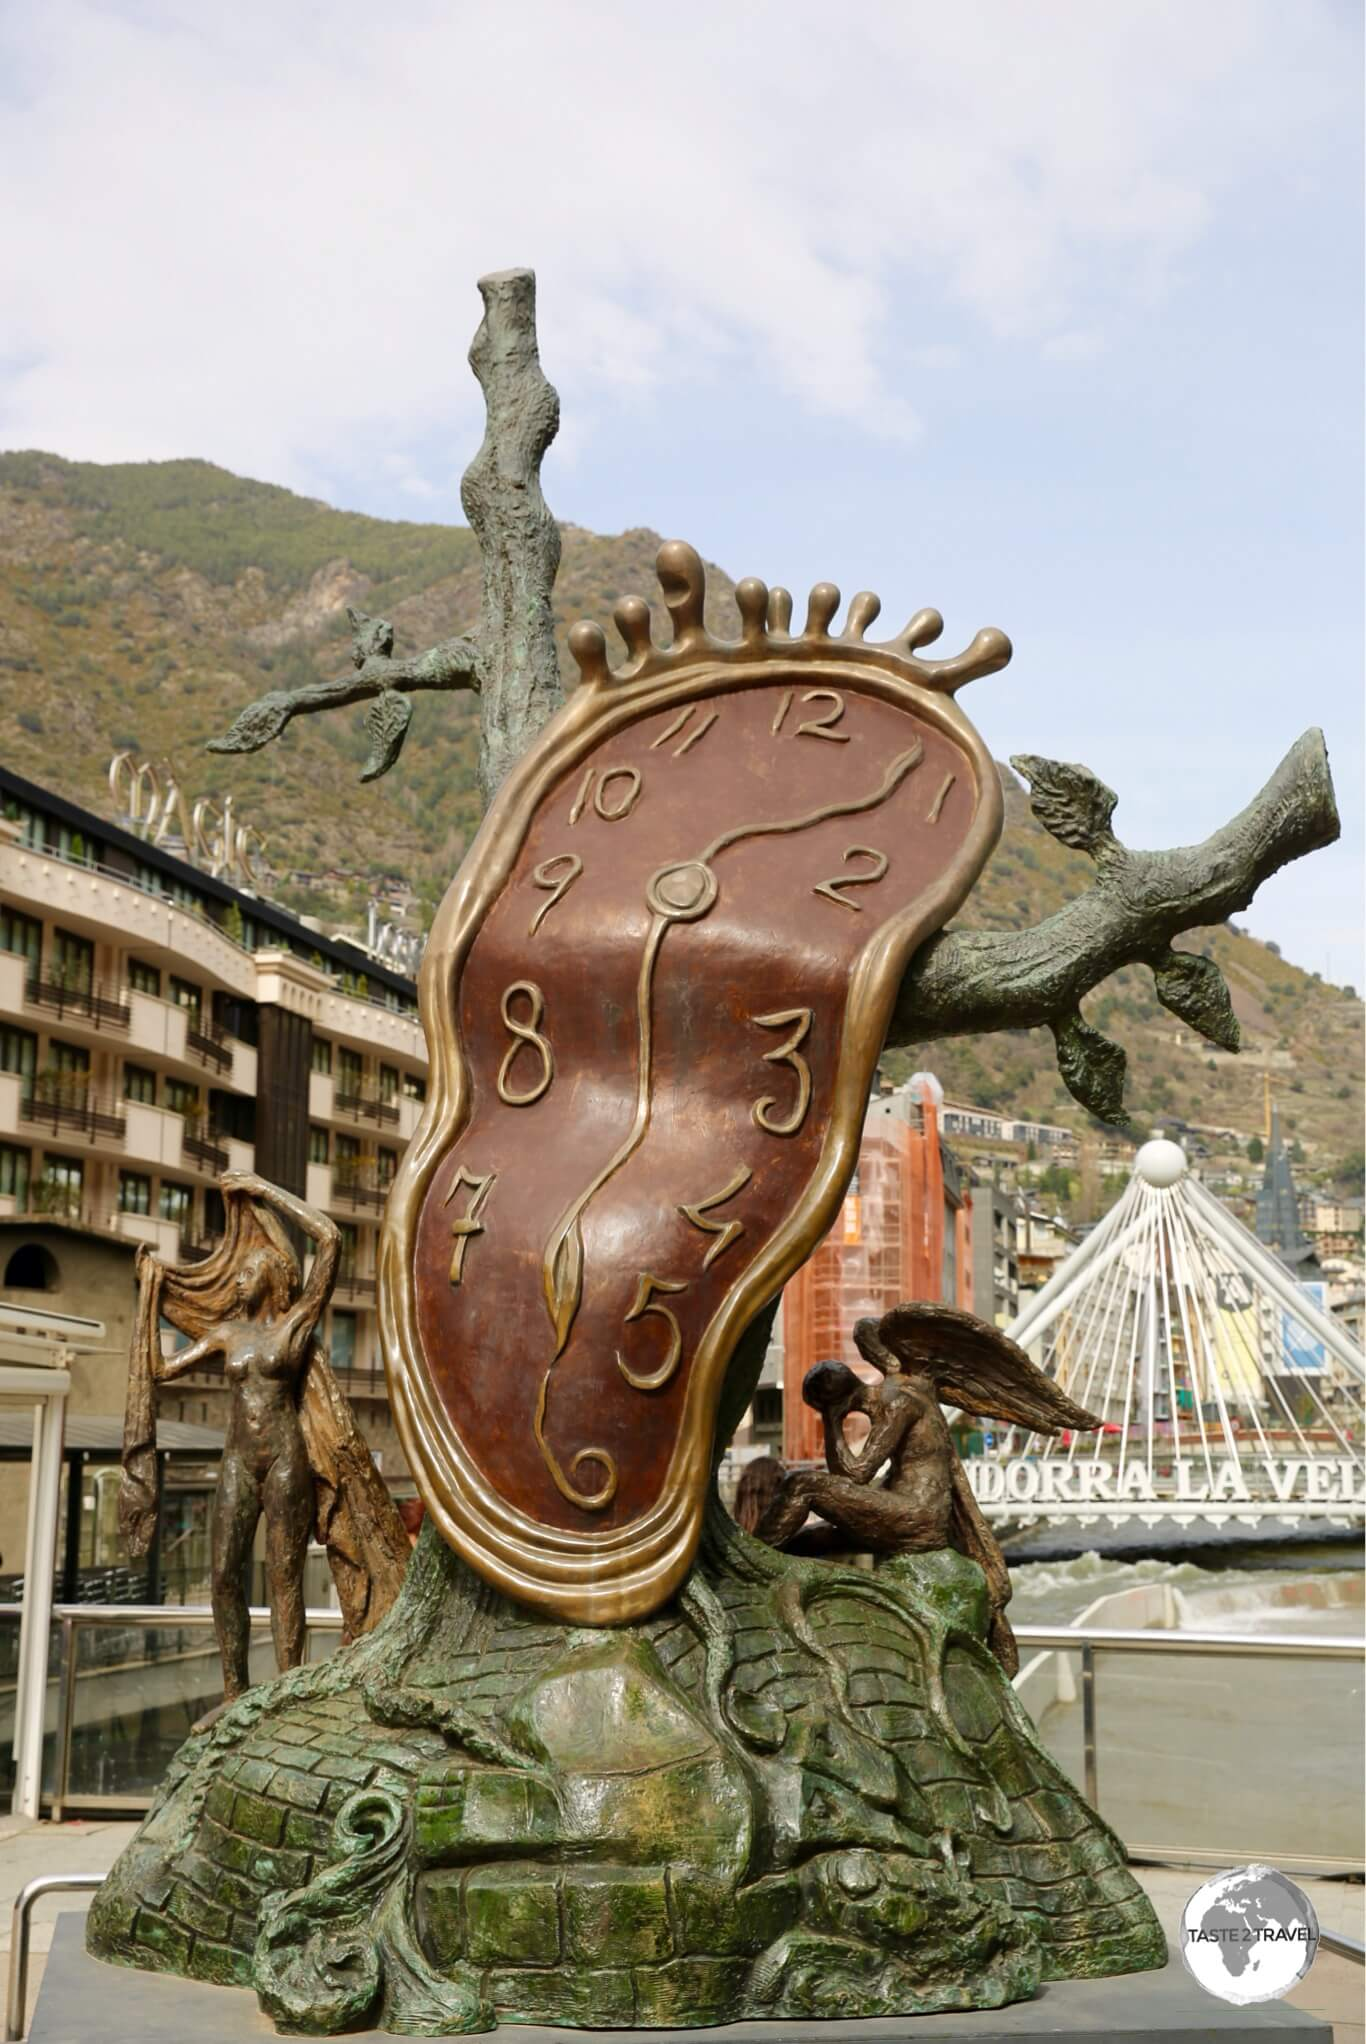 """The nobility of time"", a sculpture by Salvador Dalí in Andorra la Vella."